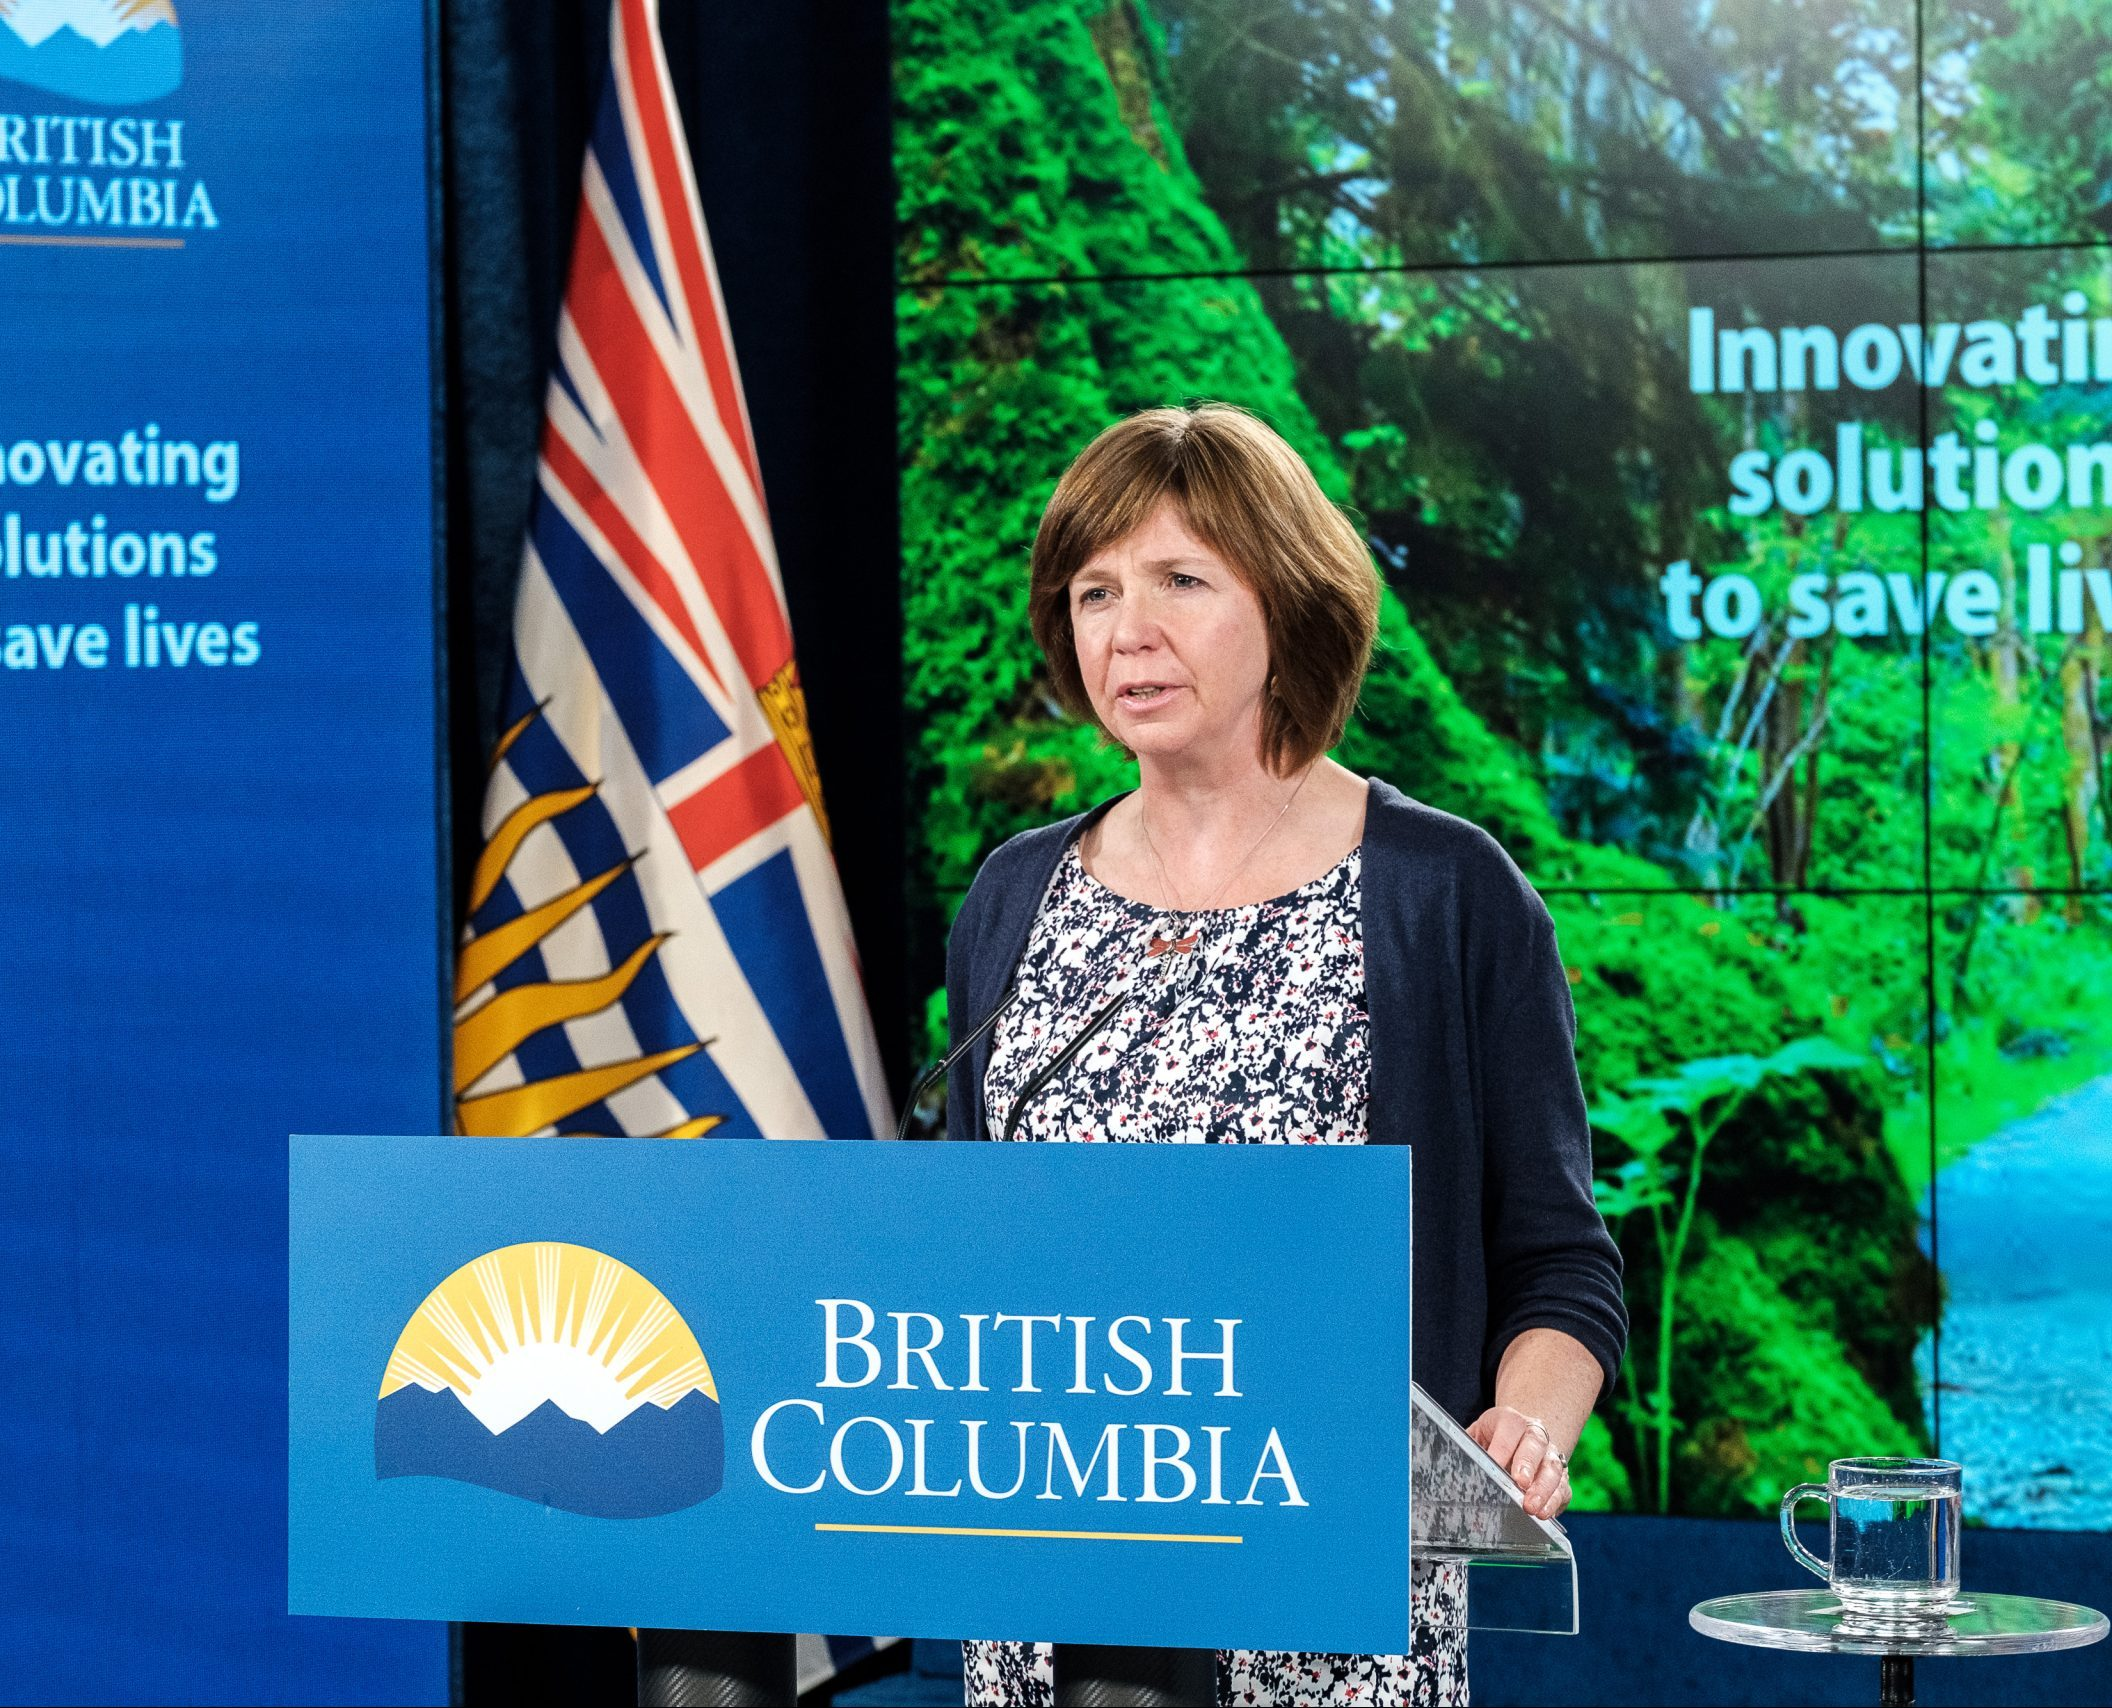 Sheila Malcolmson stands behind a BC government podium